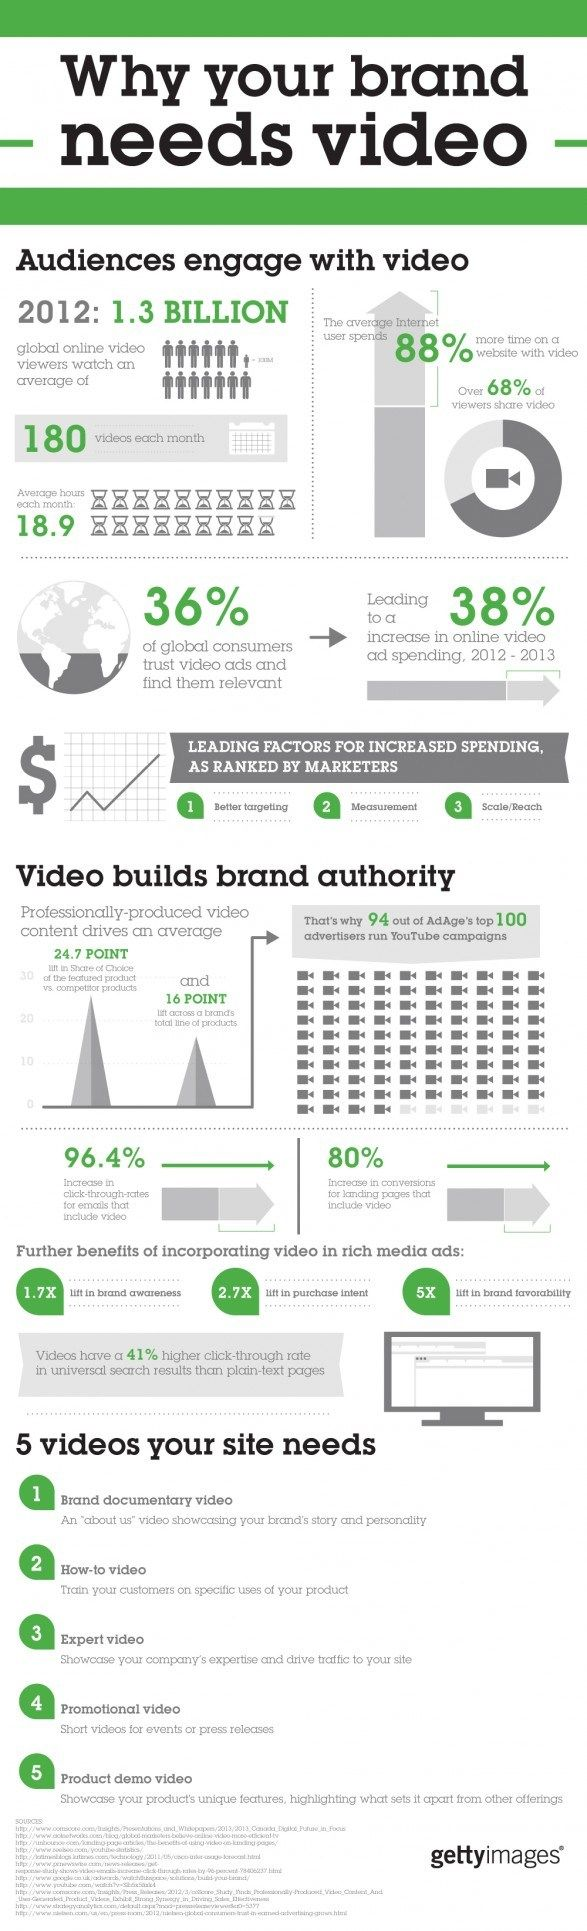 http://dingox.com Why your brand needs video? #infographic #marketing RefugeMarketing.com